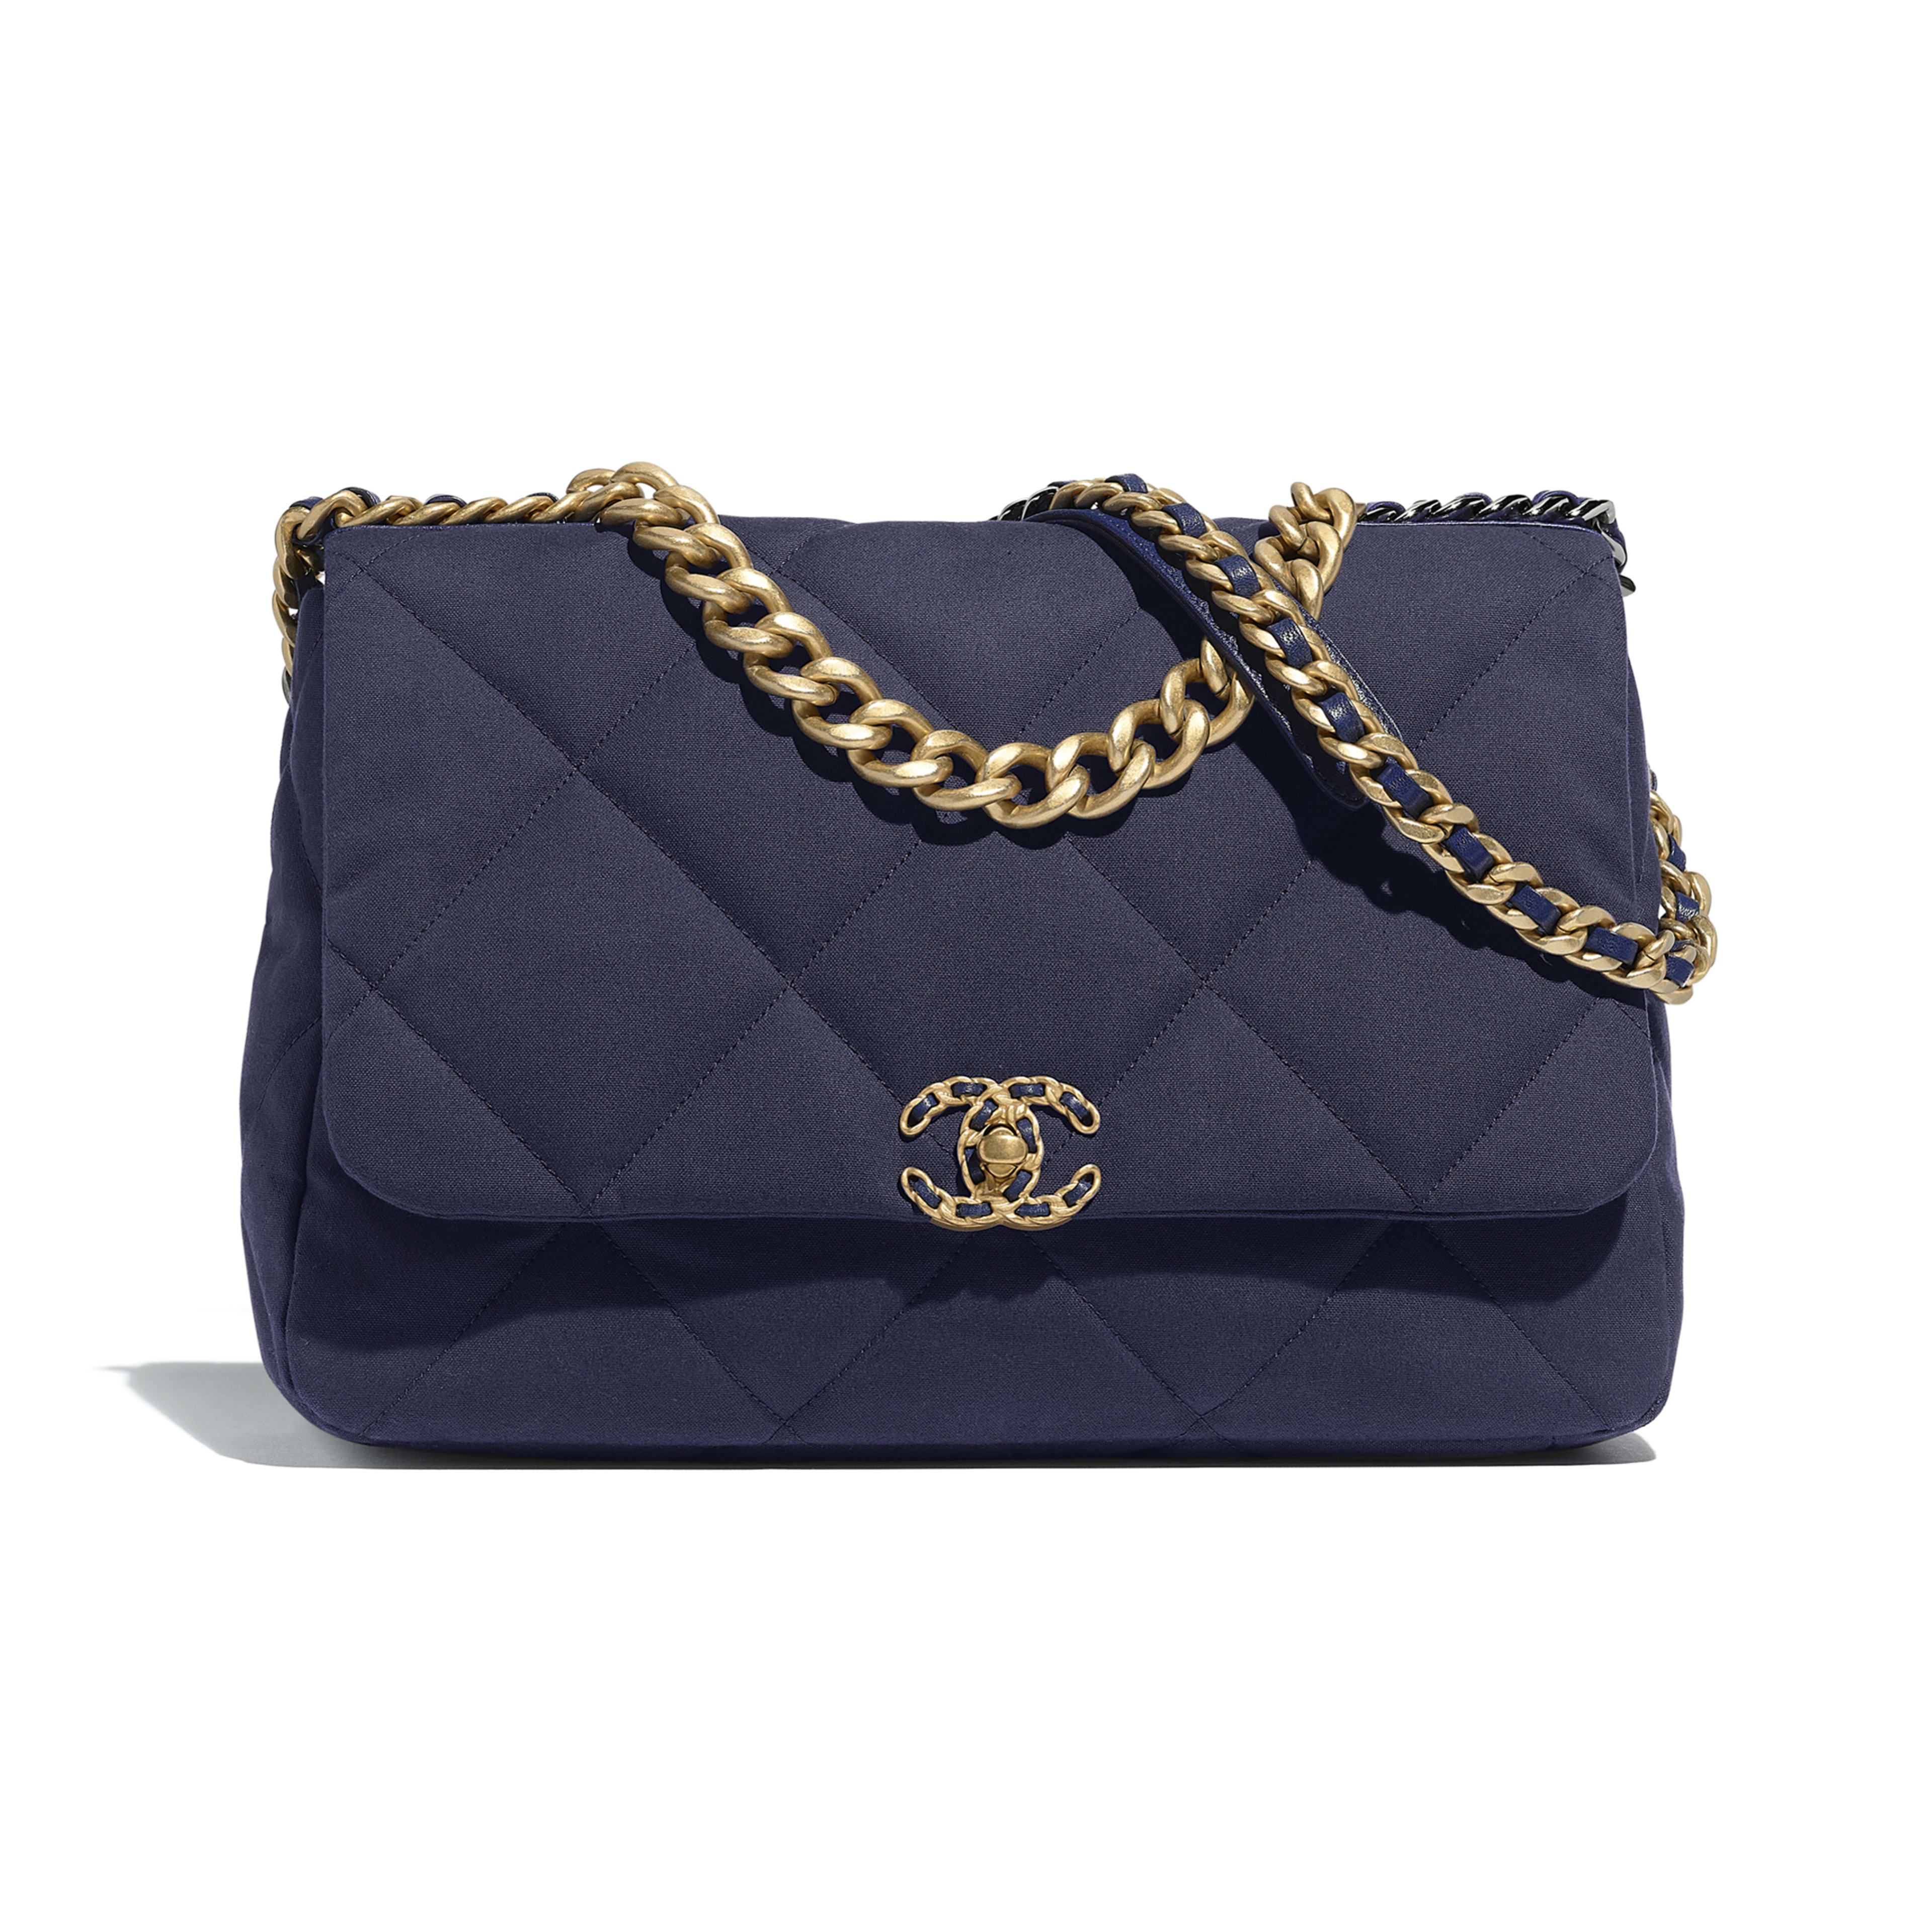 CHANEL 19 Maxi Flap Bag - Navy Blue - Cotton Canvas, Calfskin, Gold-Tone, Silver-Tone & Ruthenium-Finish Metal - Default view - see full sized version